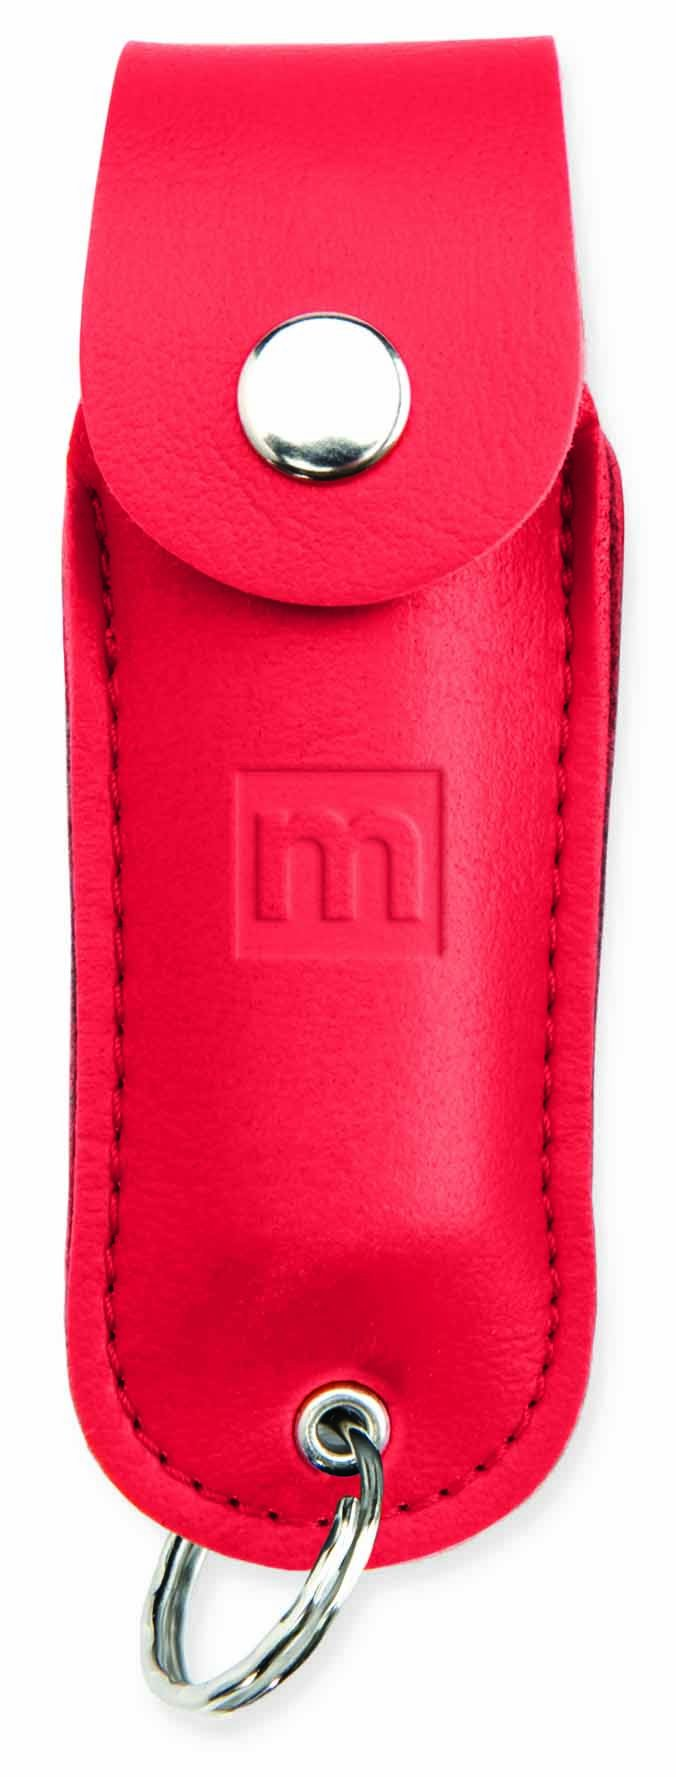 Mace Brand Police Strength Pepper Spray 10% Formula With Leather Key Case (Red)